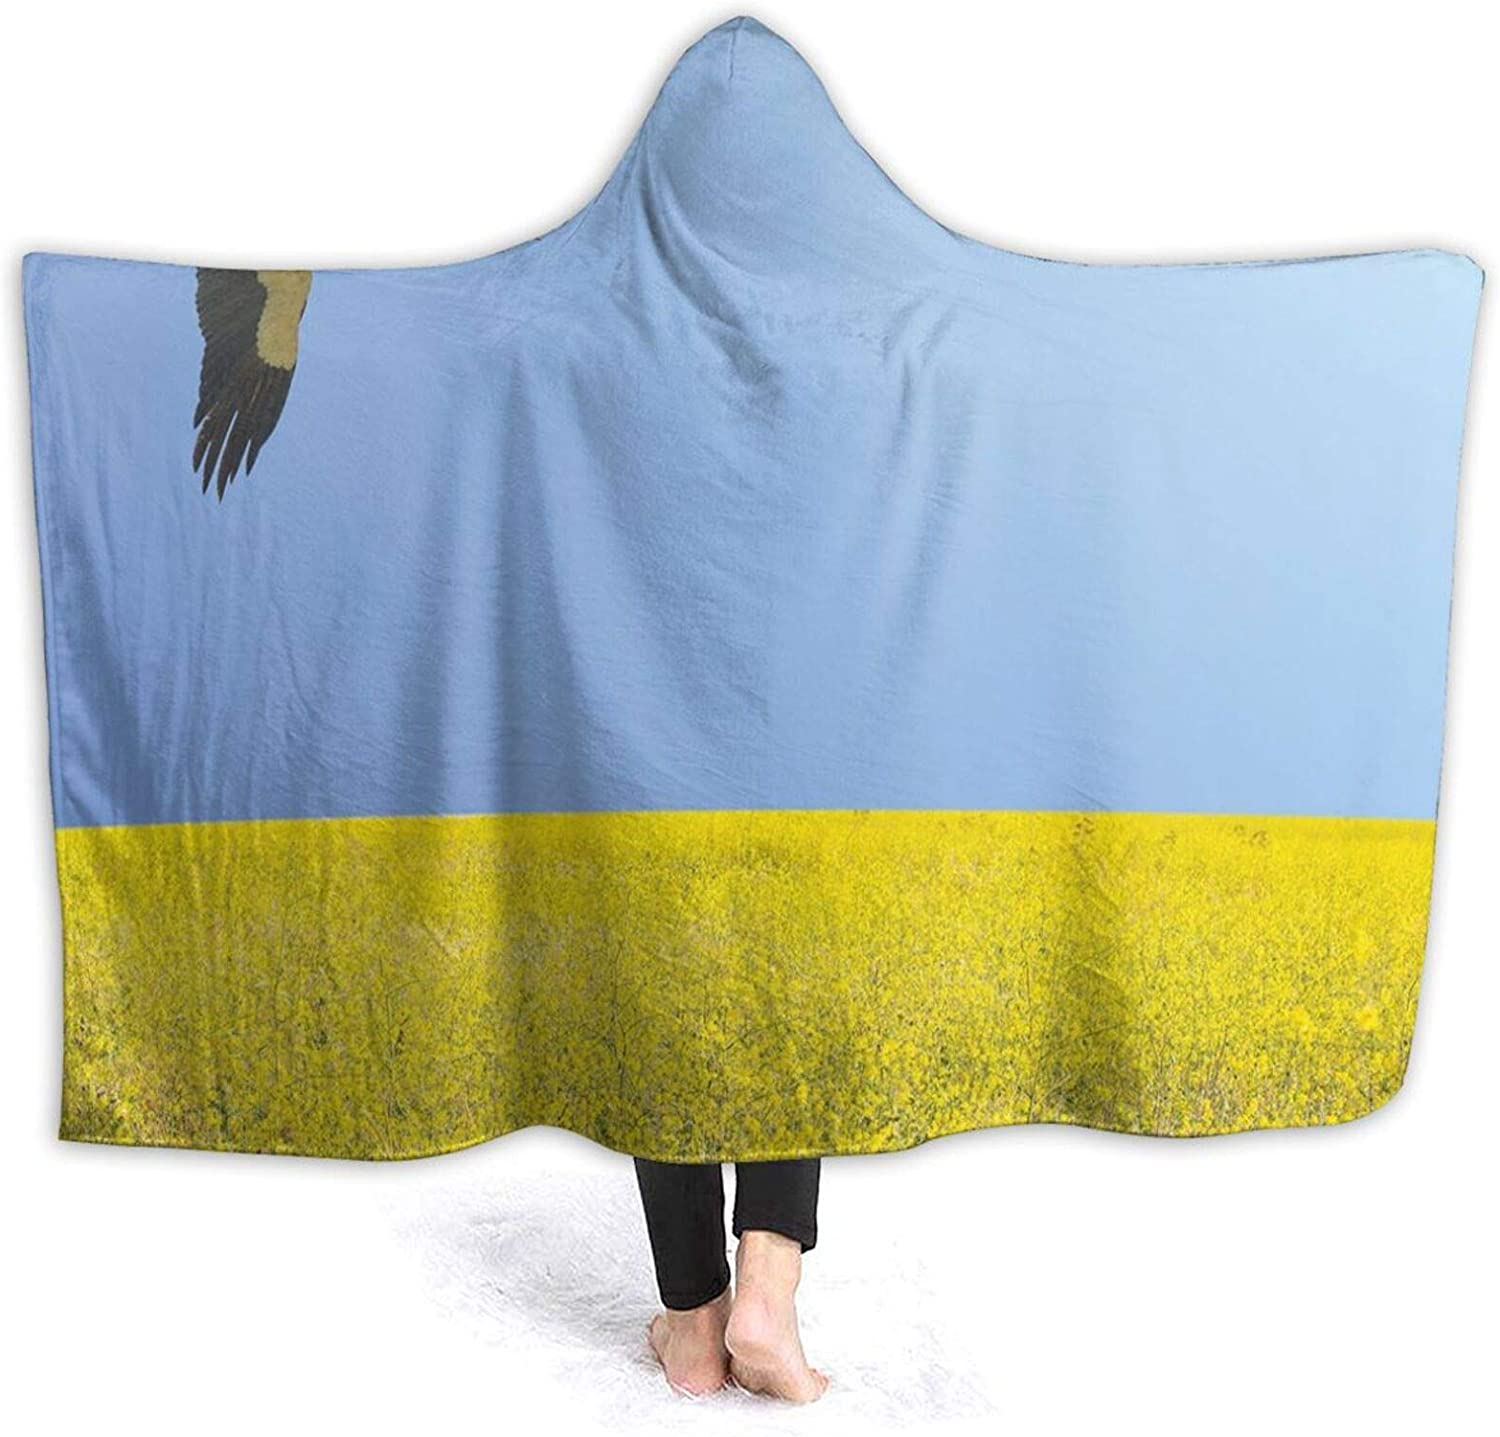 Same day shipping Hooded 55% OFF Blanket Anti-Pilling Flannel Alone Stork in Clear Flying